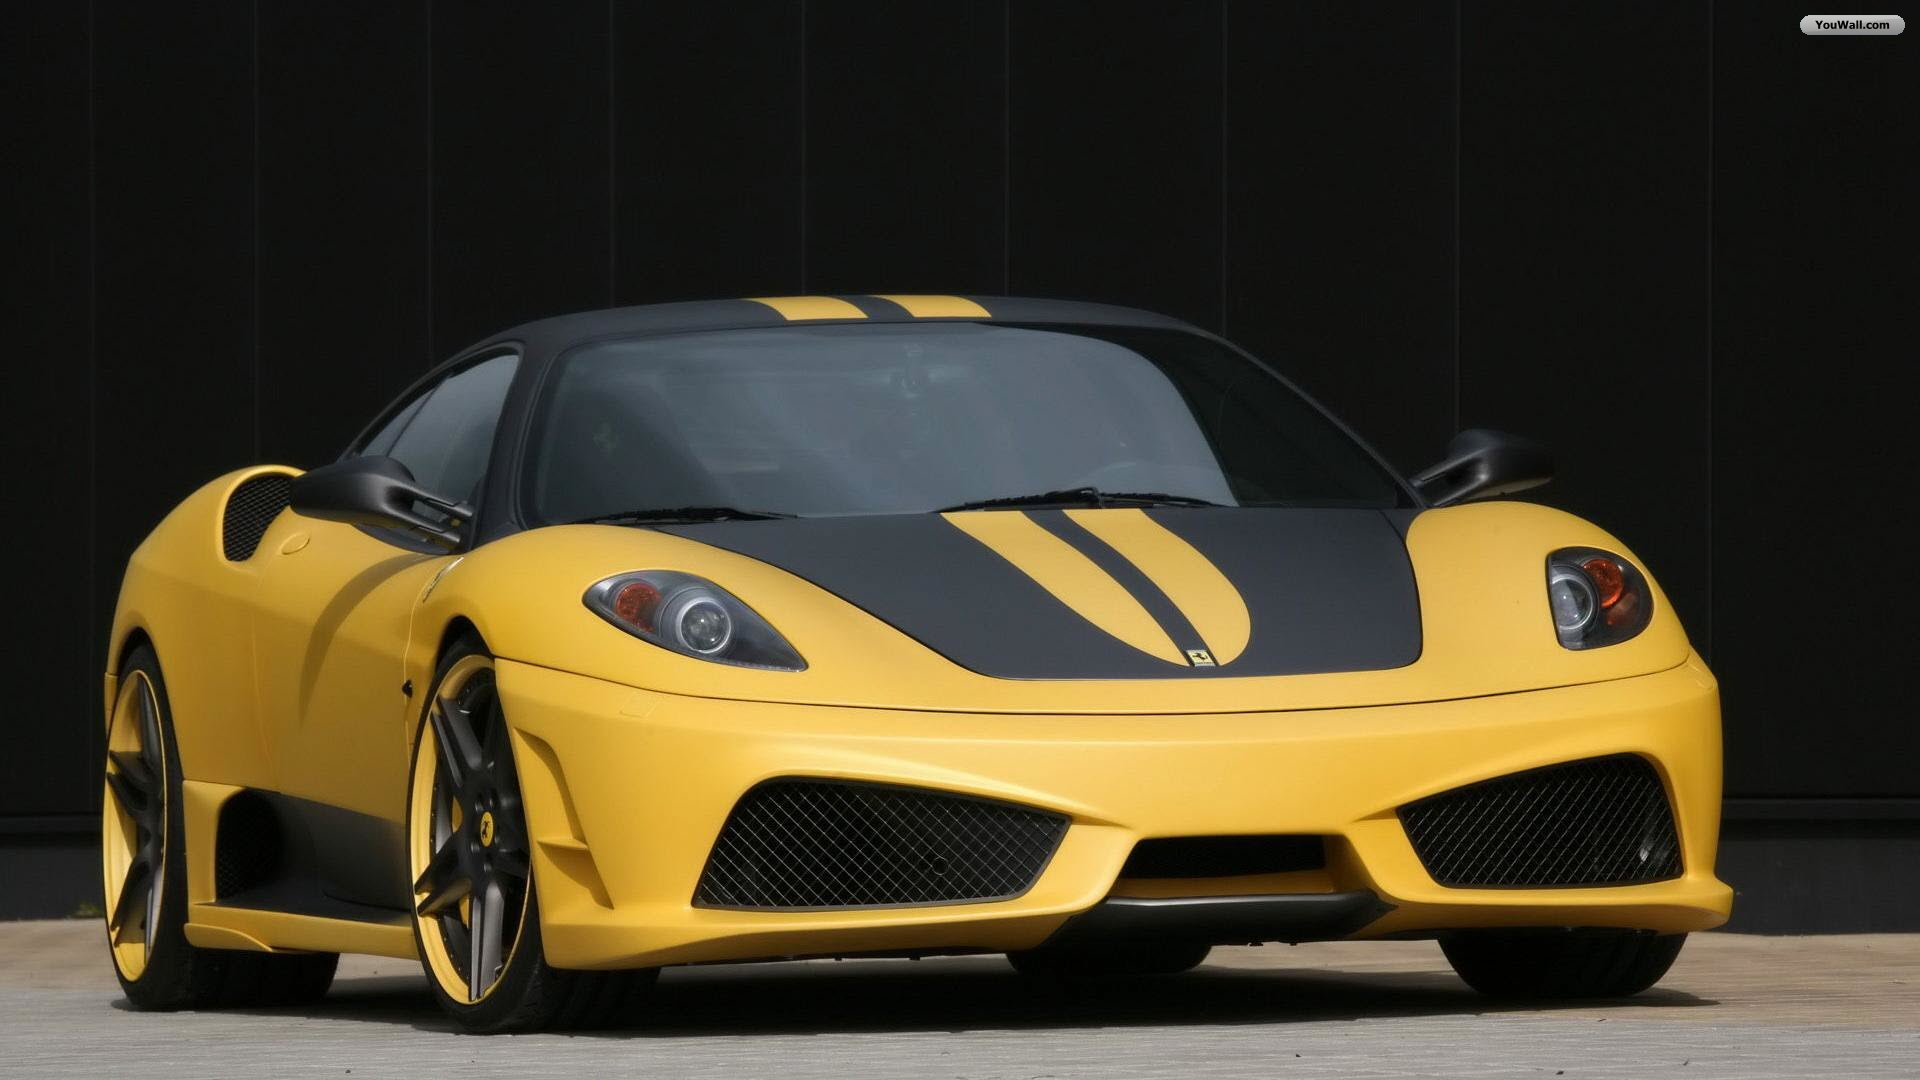 Yellow Ferrari Wallpaper